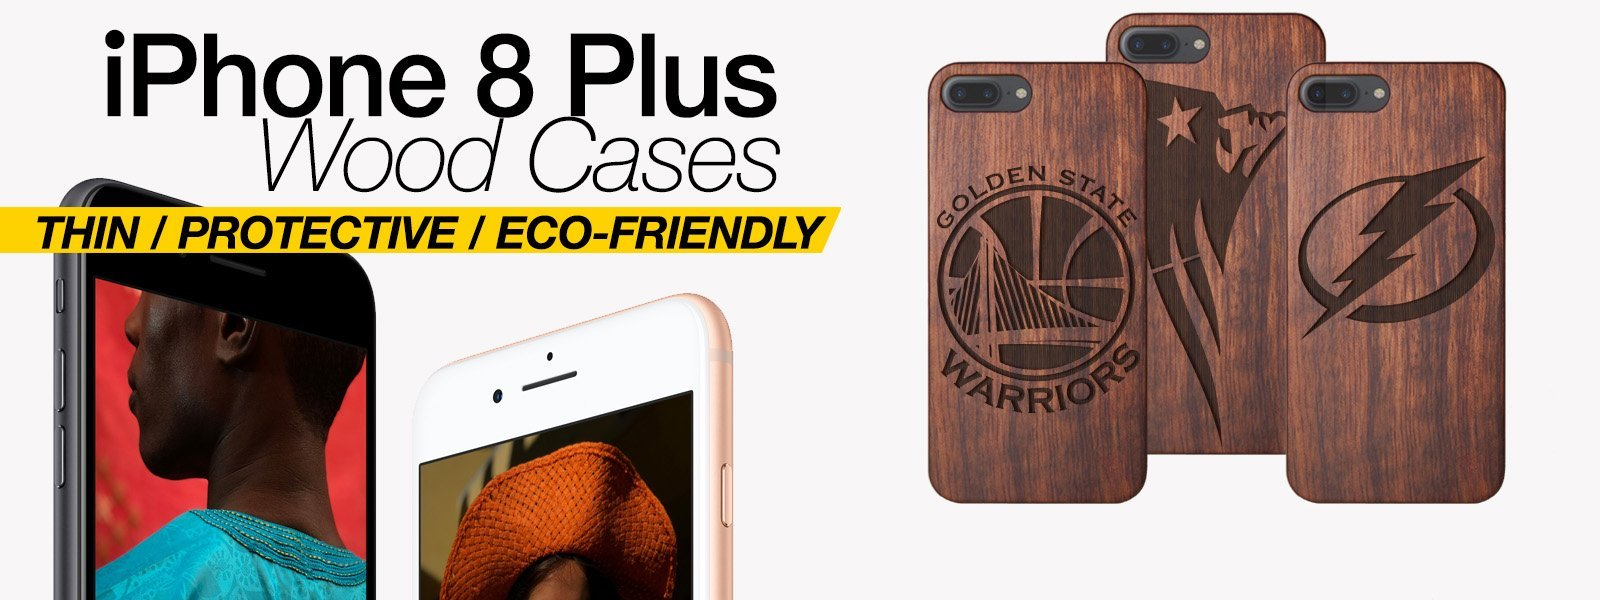 Wood iPhone 8 Plus Cases Thin Protective Eco Friendly